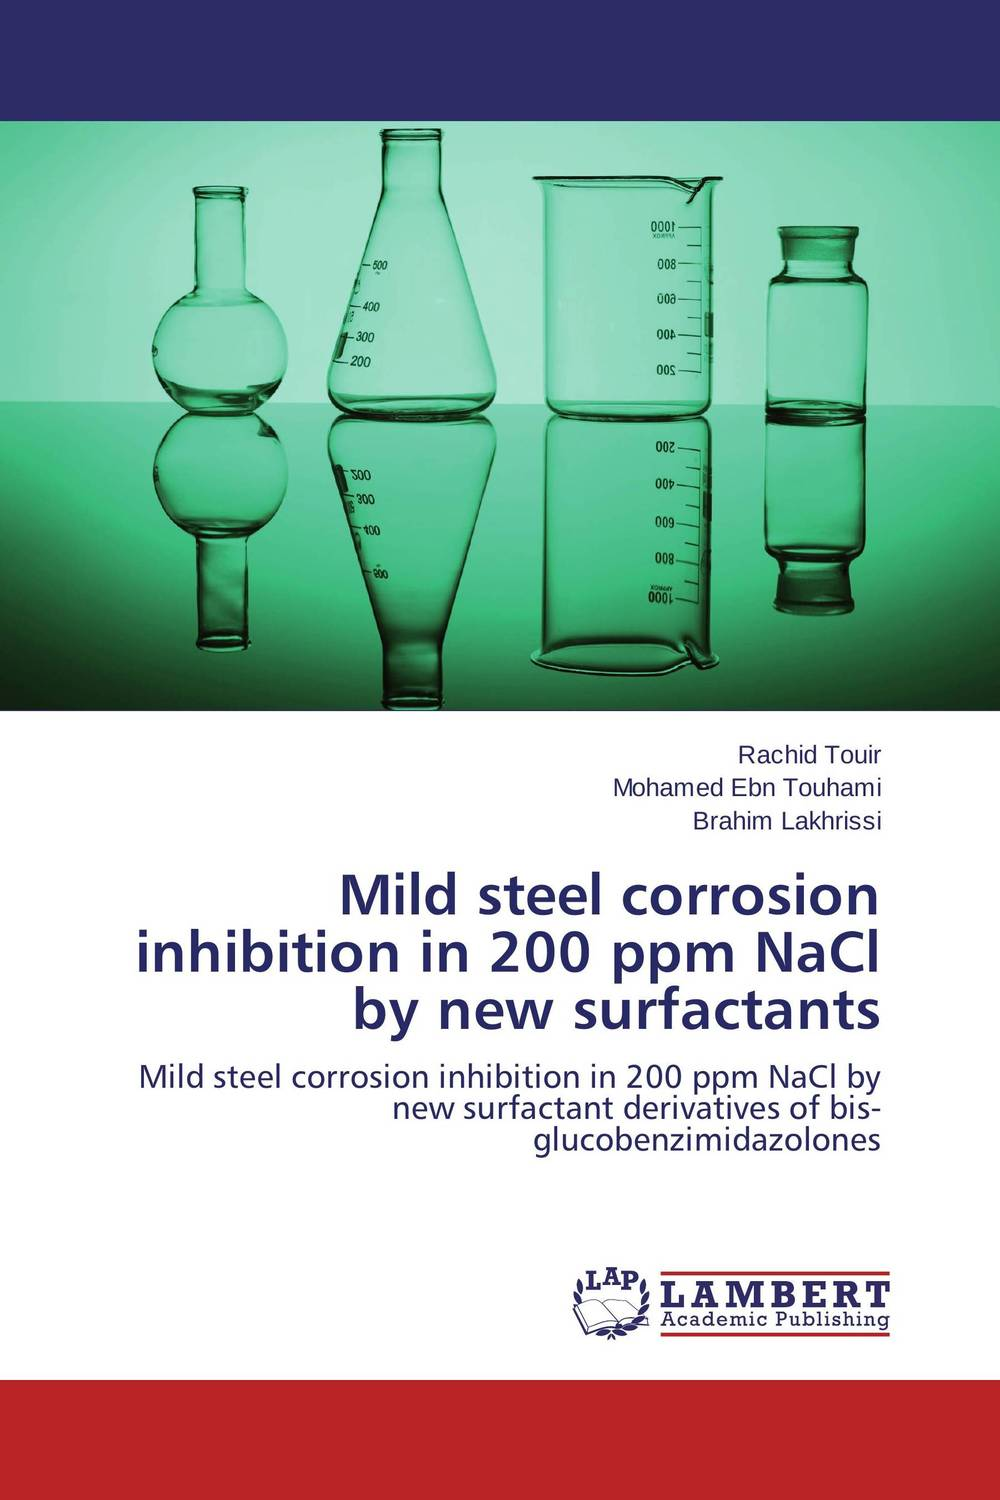 Mild steel corrosion inhibition in 200 ppm NaCl by new surfactants